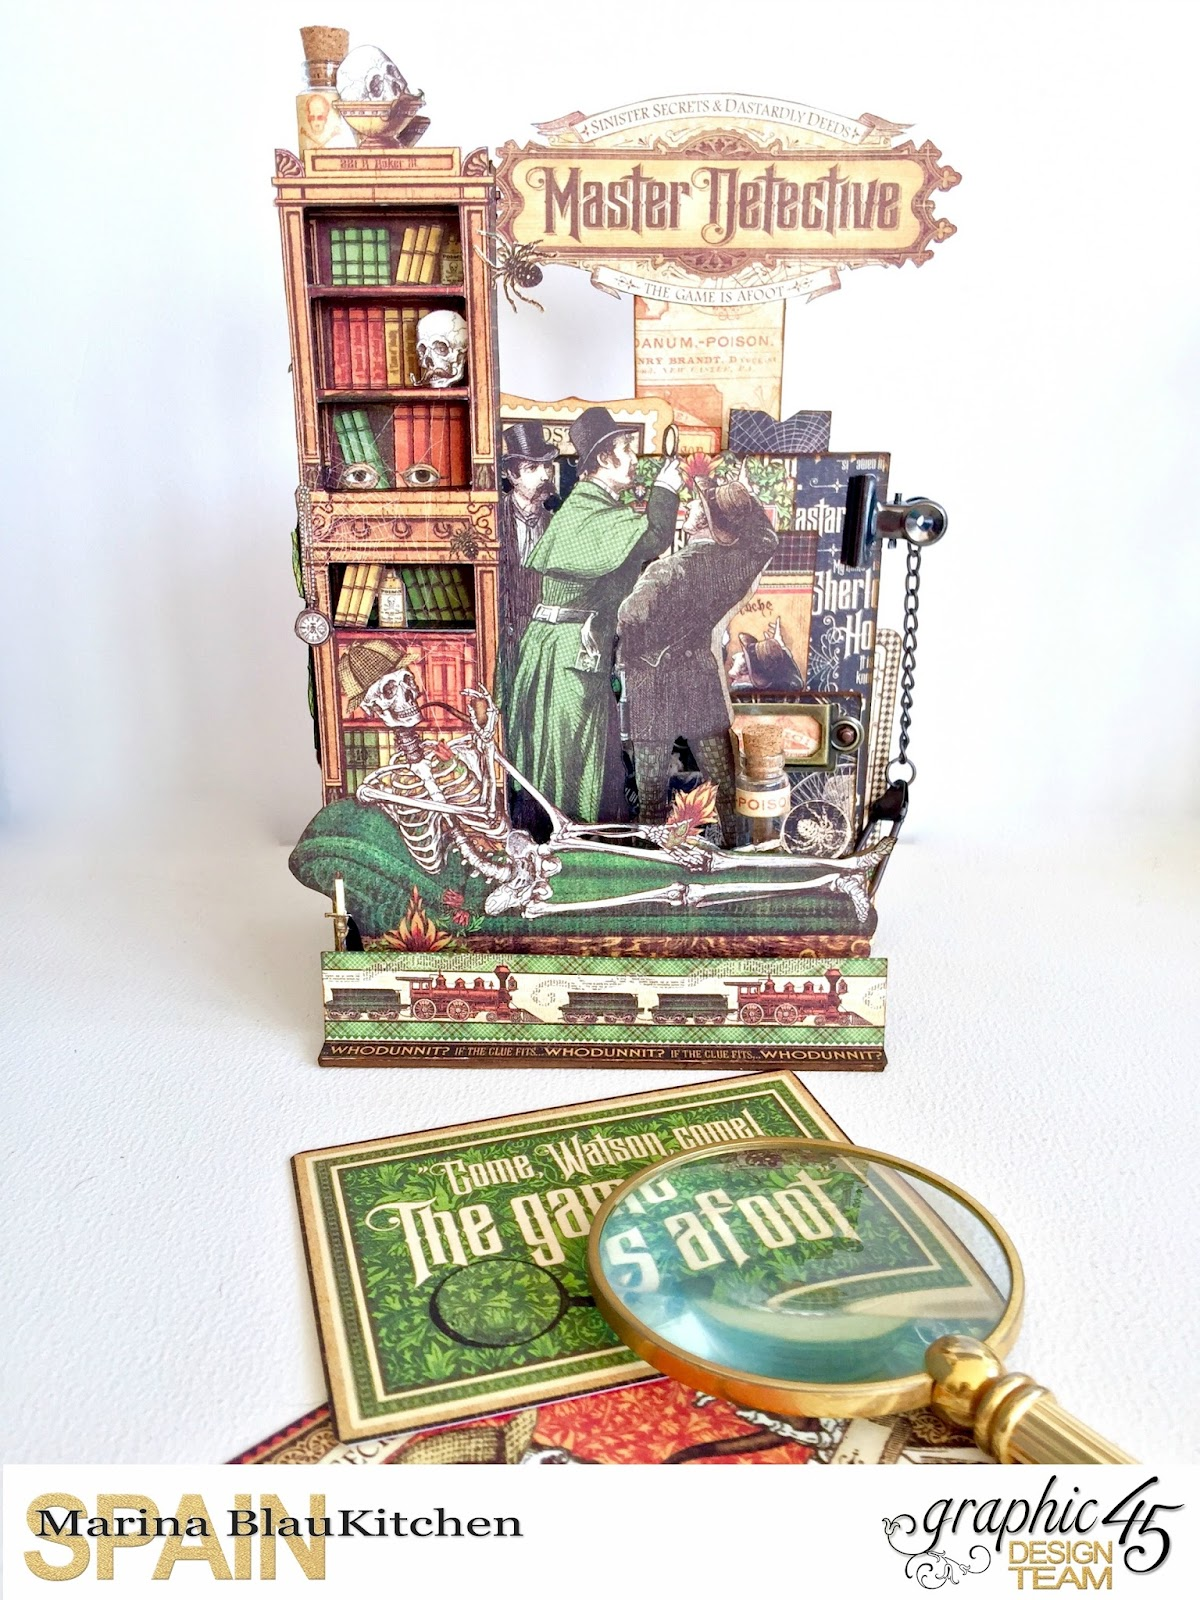 Stand and Mini Album Master Detective by Marina Blaukitchen Product by Graphic 45 photo 1.jpg